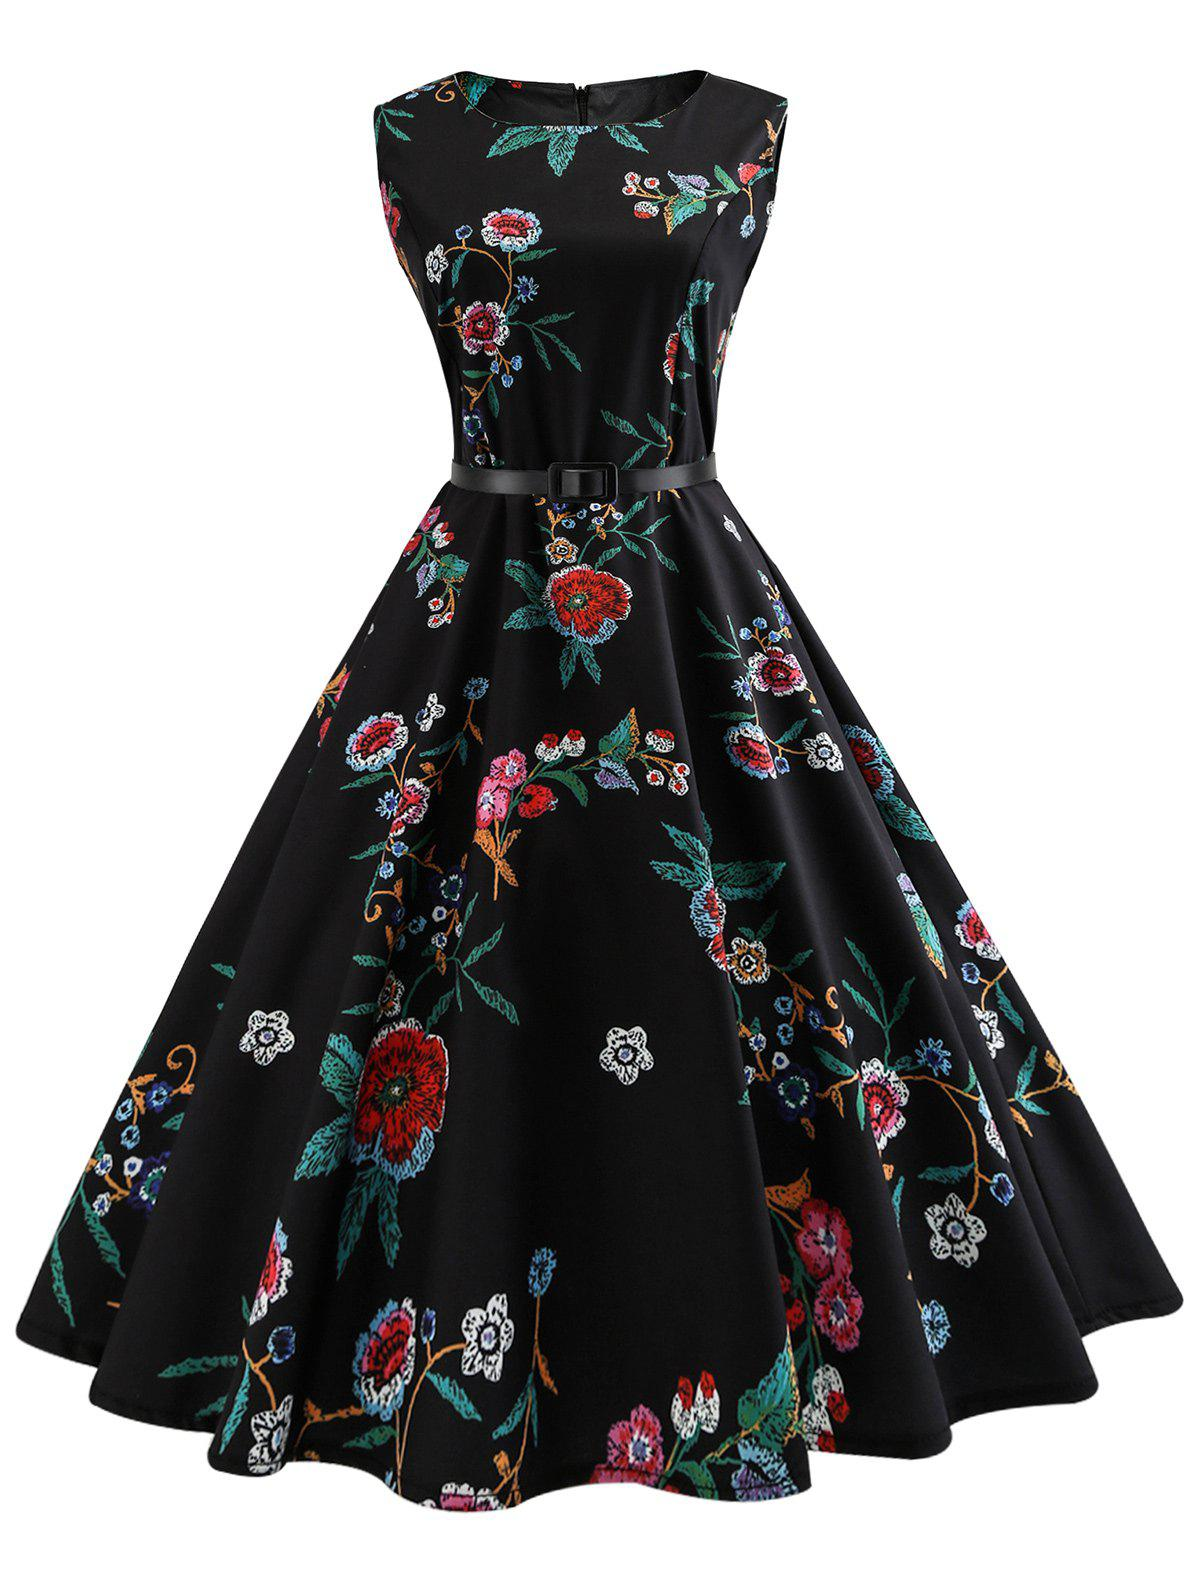 Fashion Vintage Sleeveless Flower Print A Line Dress